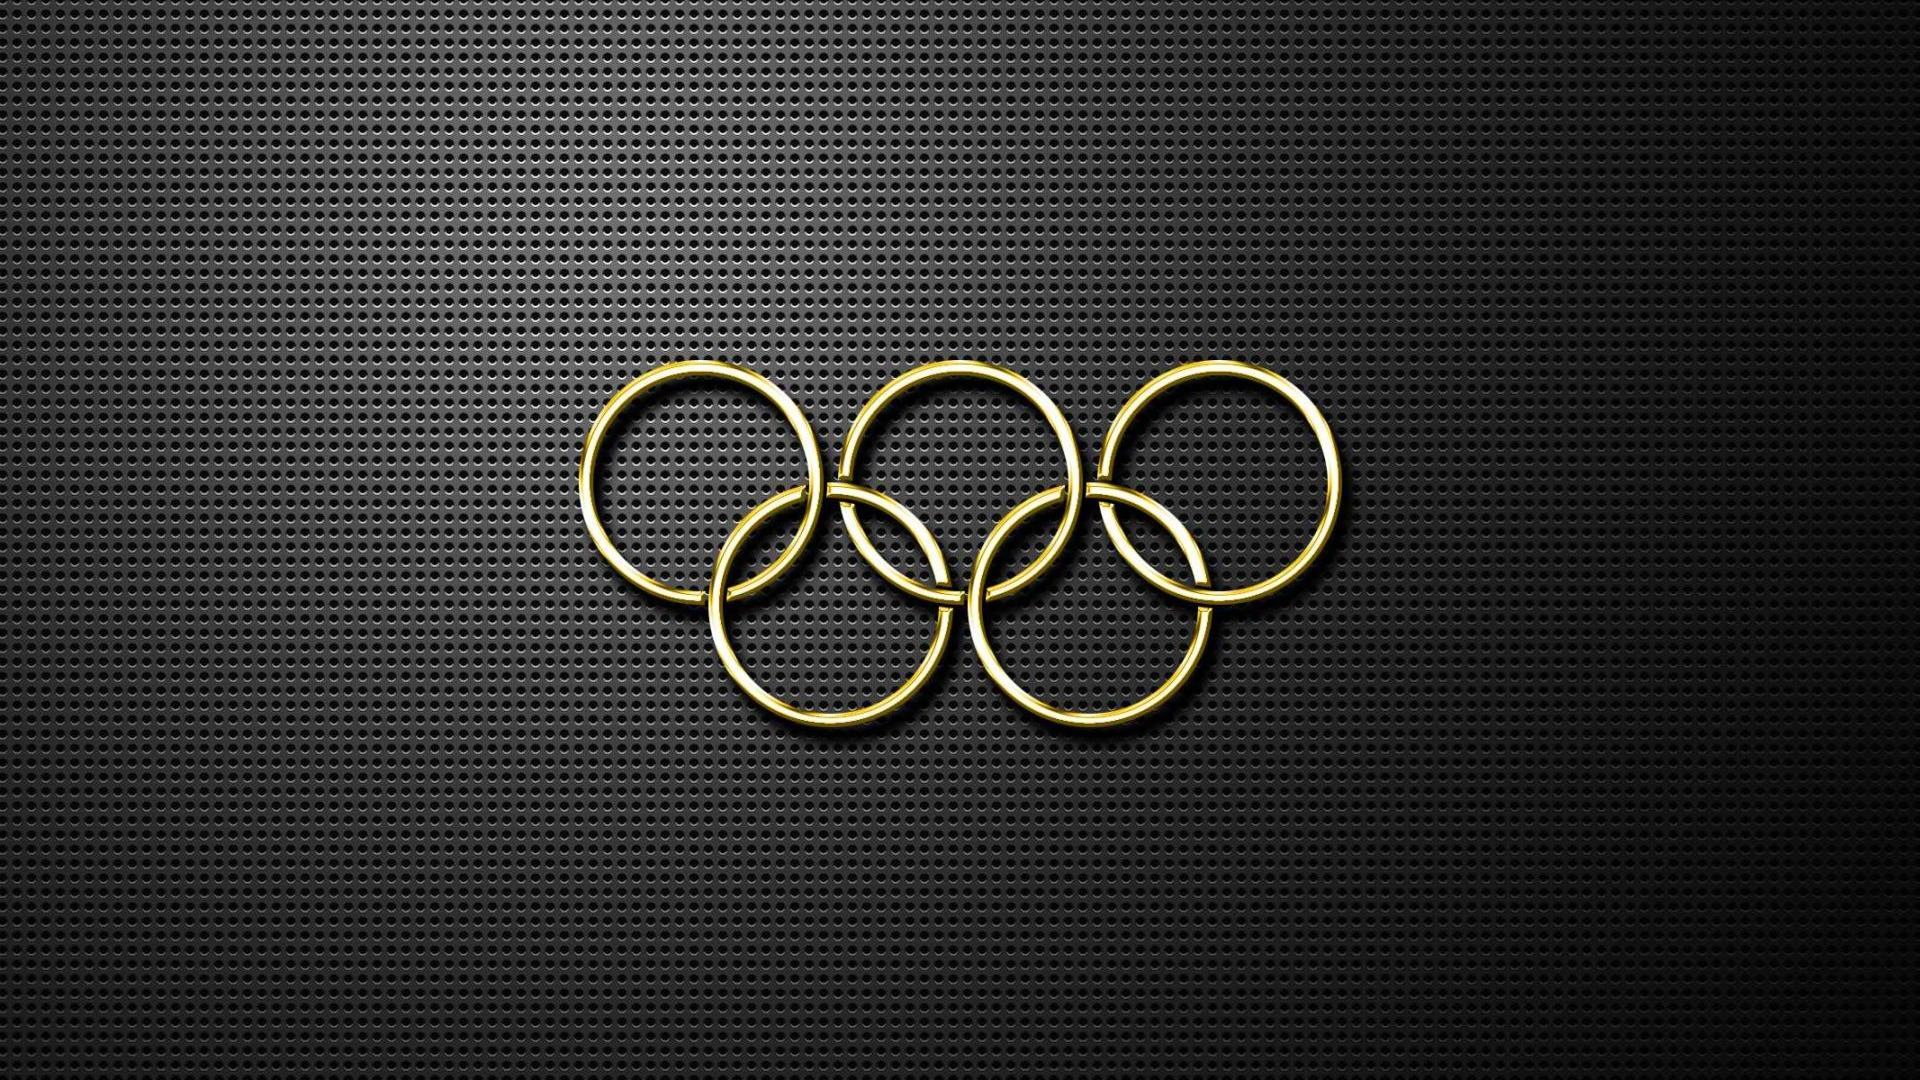 London 2012 Olympic Games Wallpaper 02 Preview